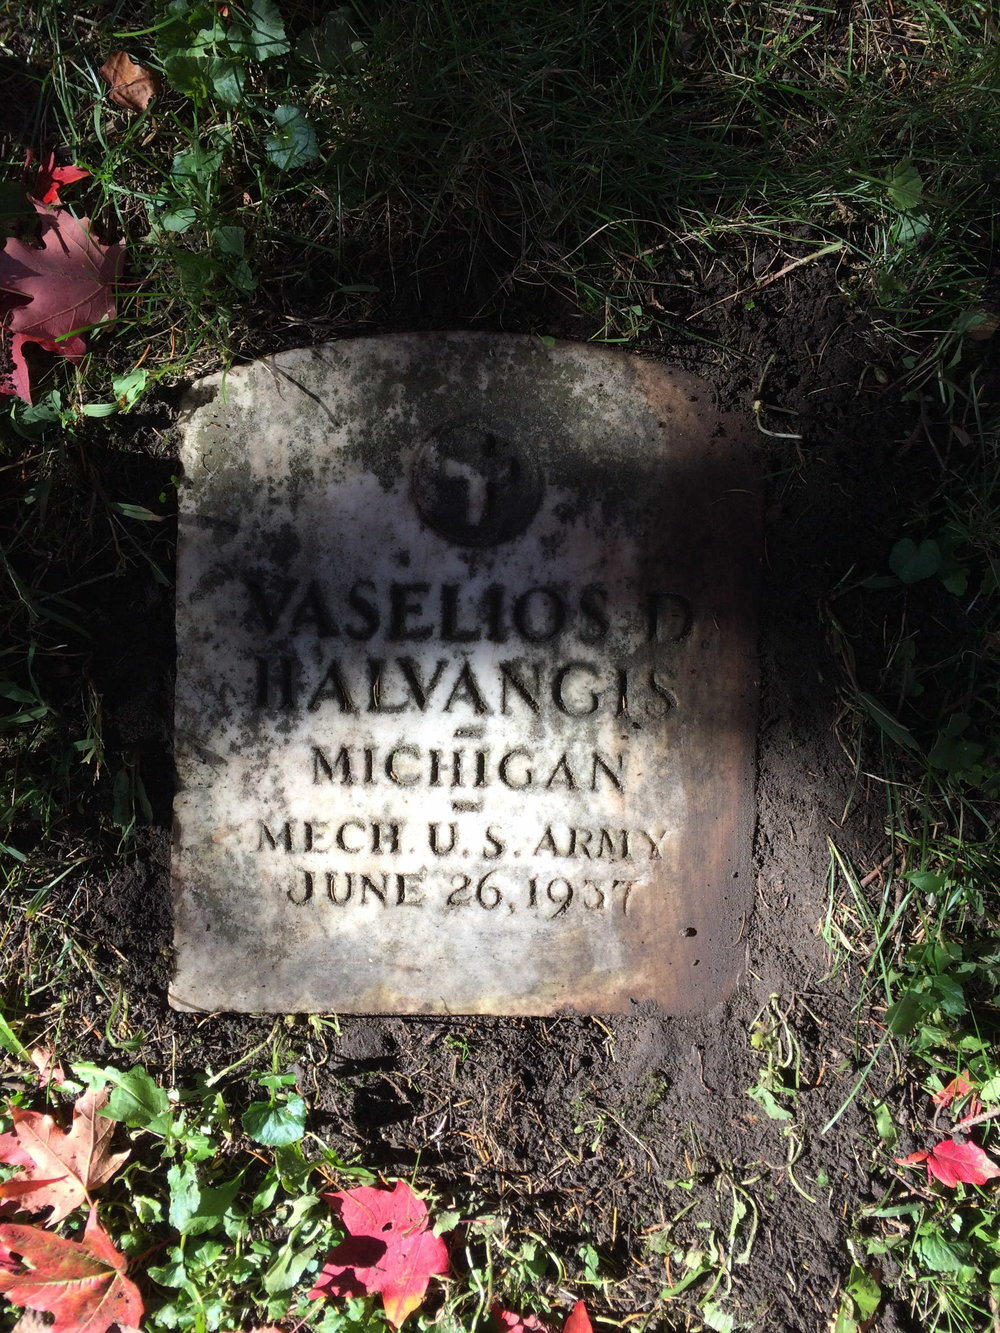 Vasilios Halvangis headstone at Evergreen Cemetery in Detroit, MI